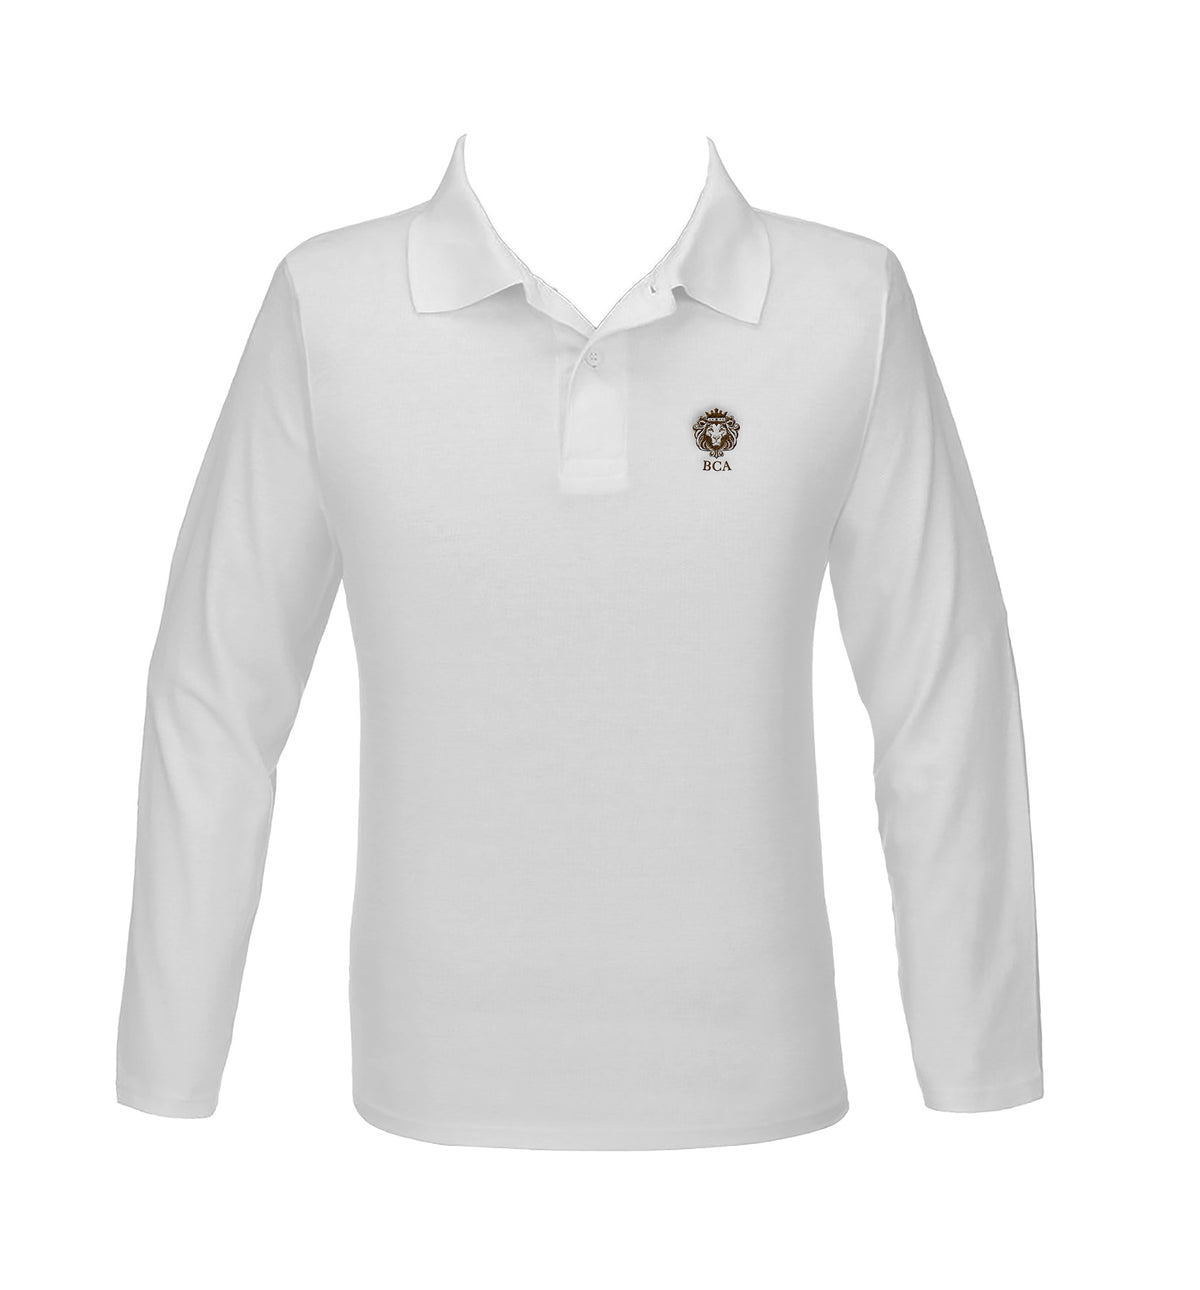 BIBLEWAY WHITE GOLF SHIRT, UNISEX, LONG SLEEVE, YOUTH